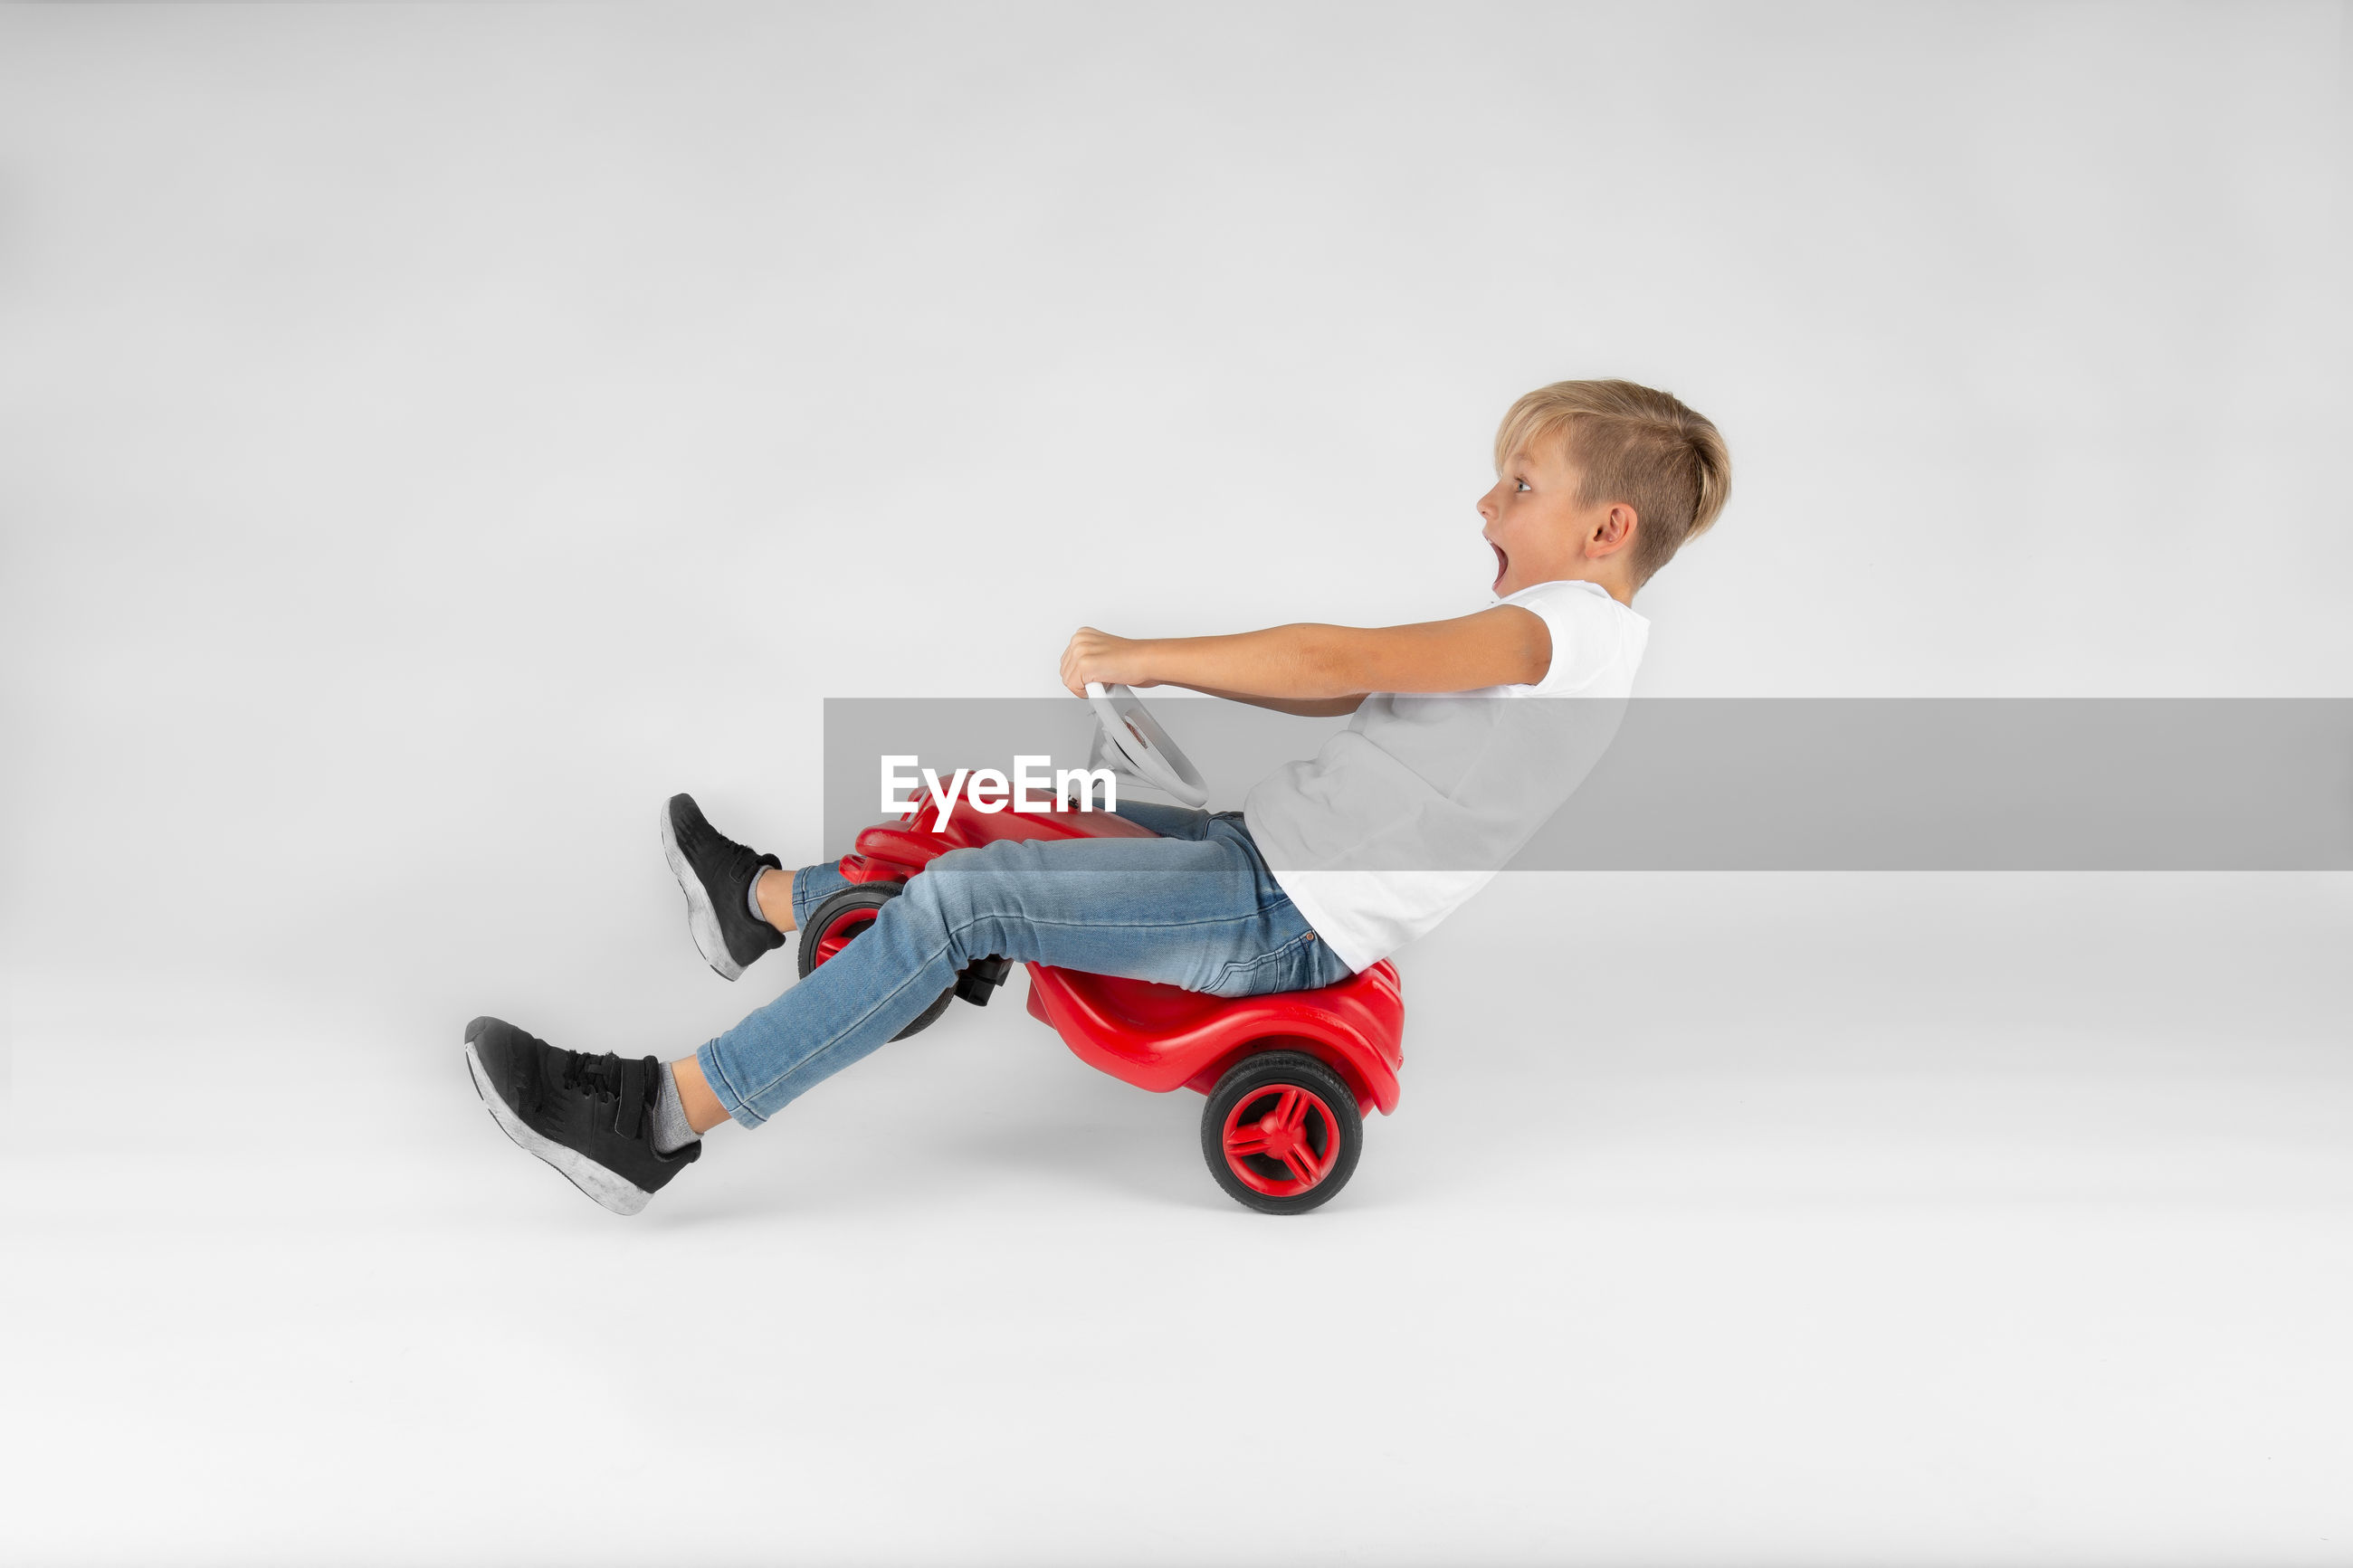 Side view of boy playing with toy car against white background